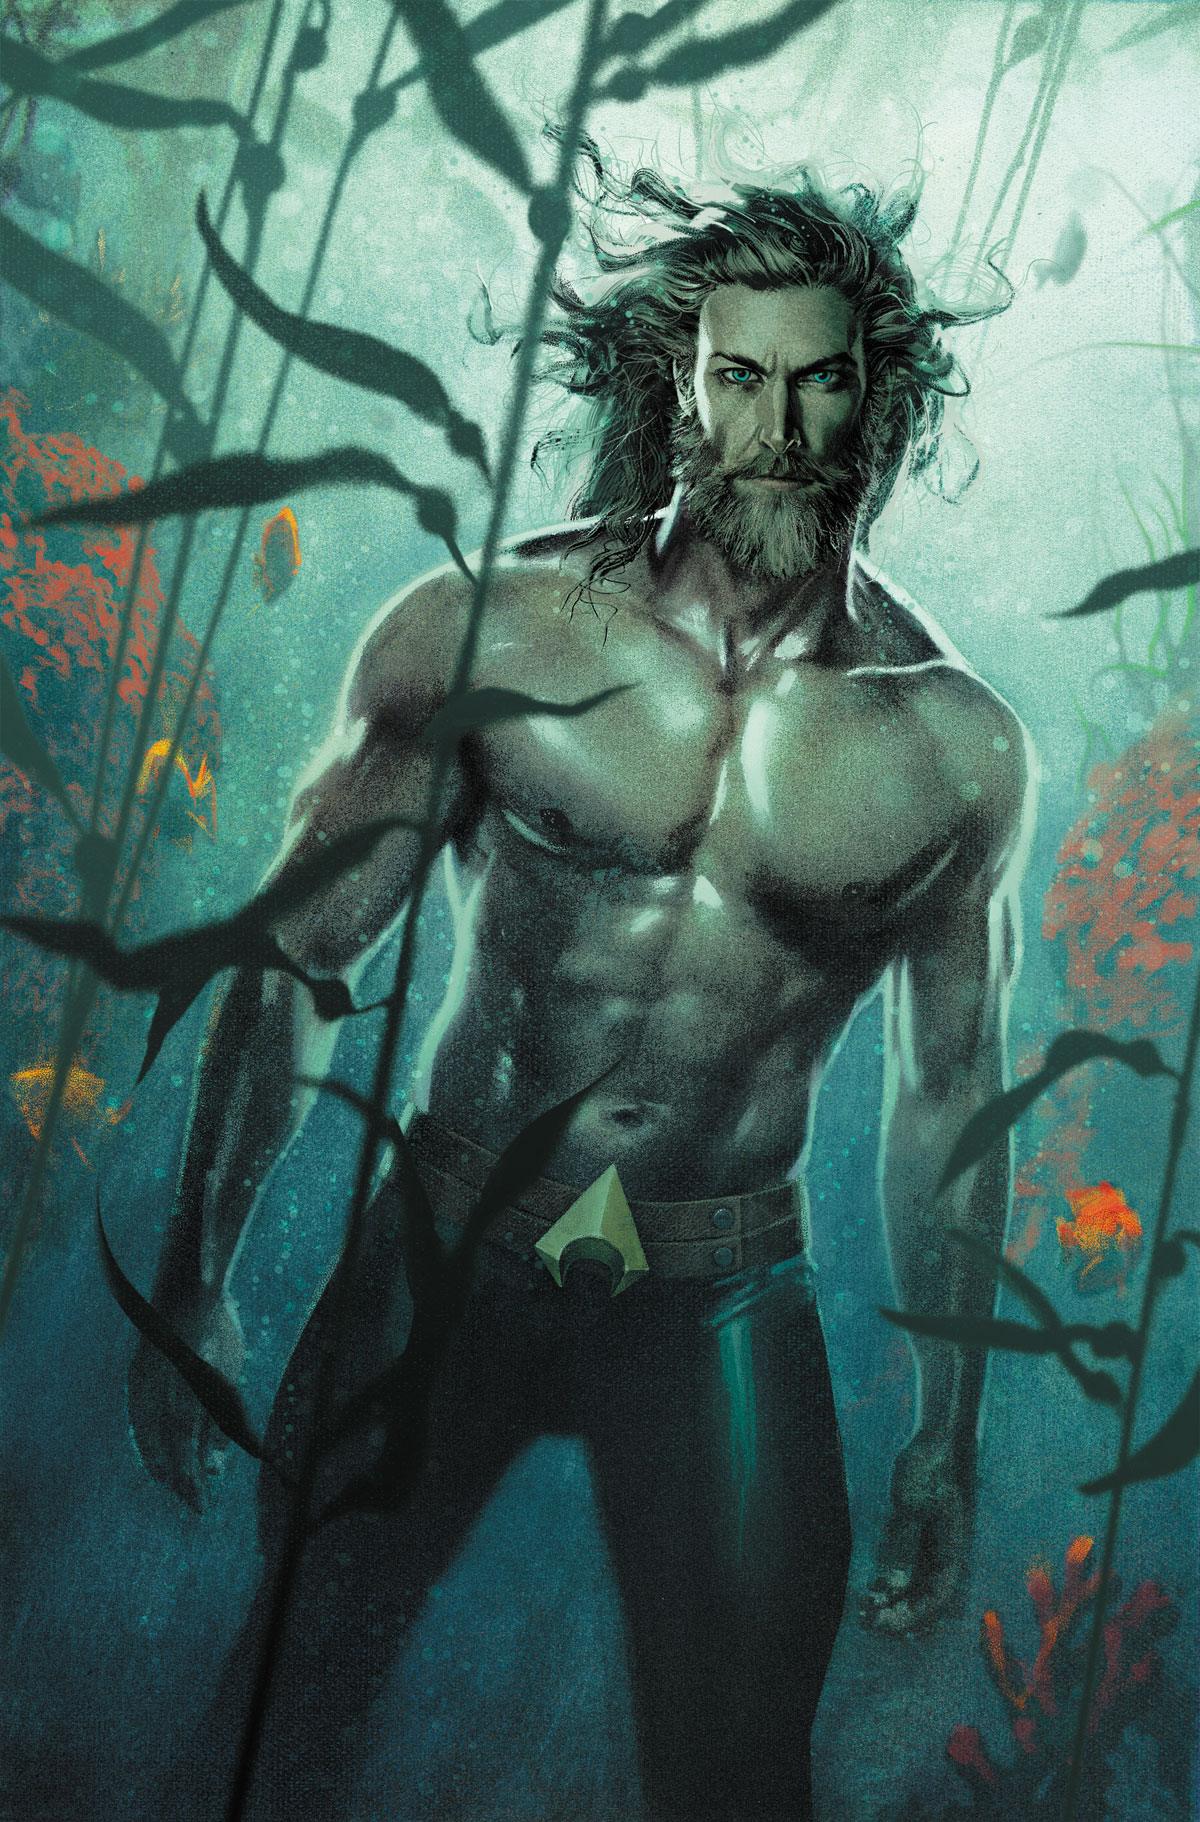 Aquaman #47 review: The Return of the Gods